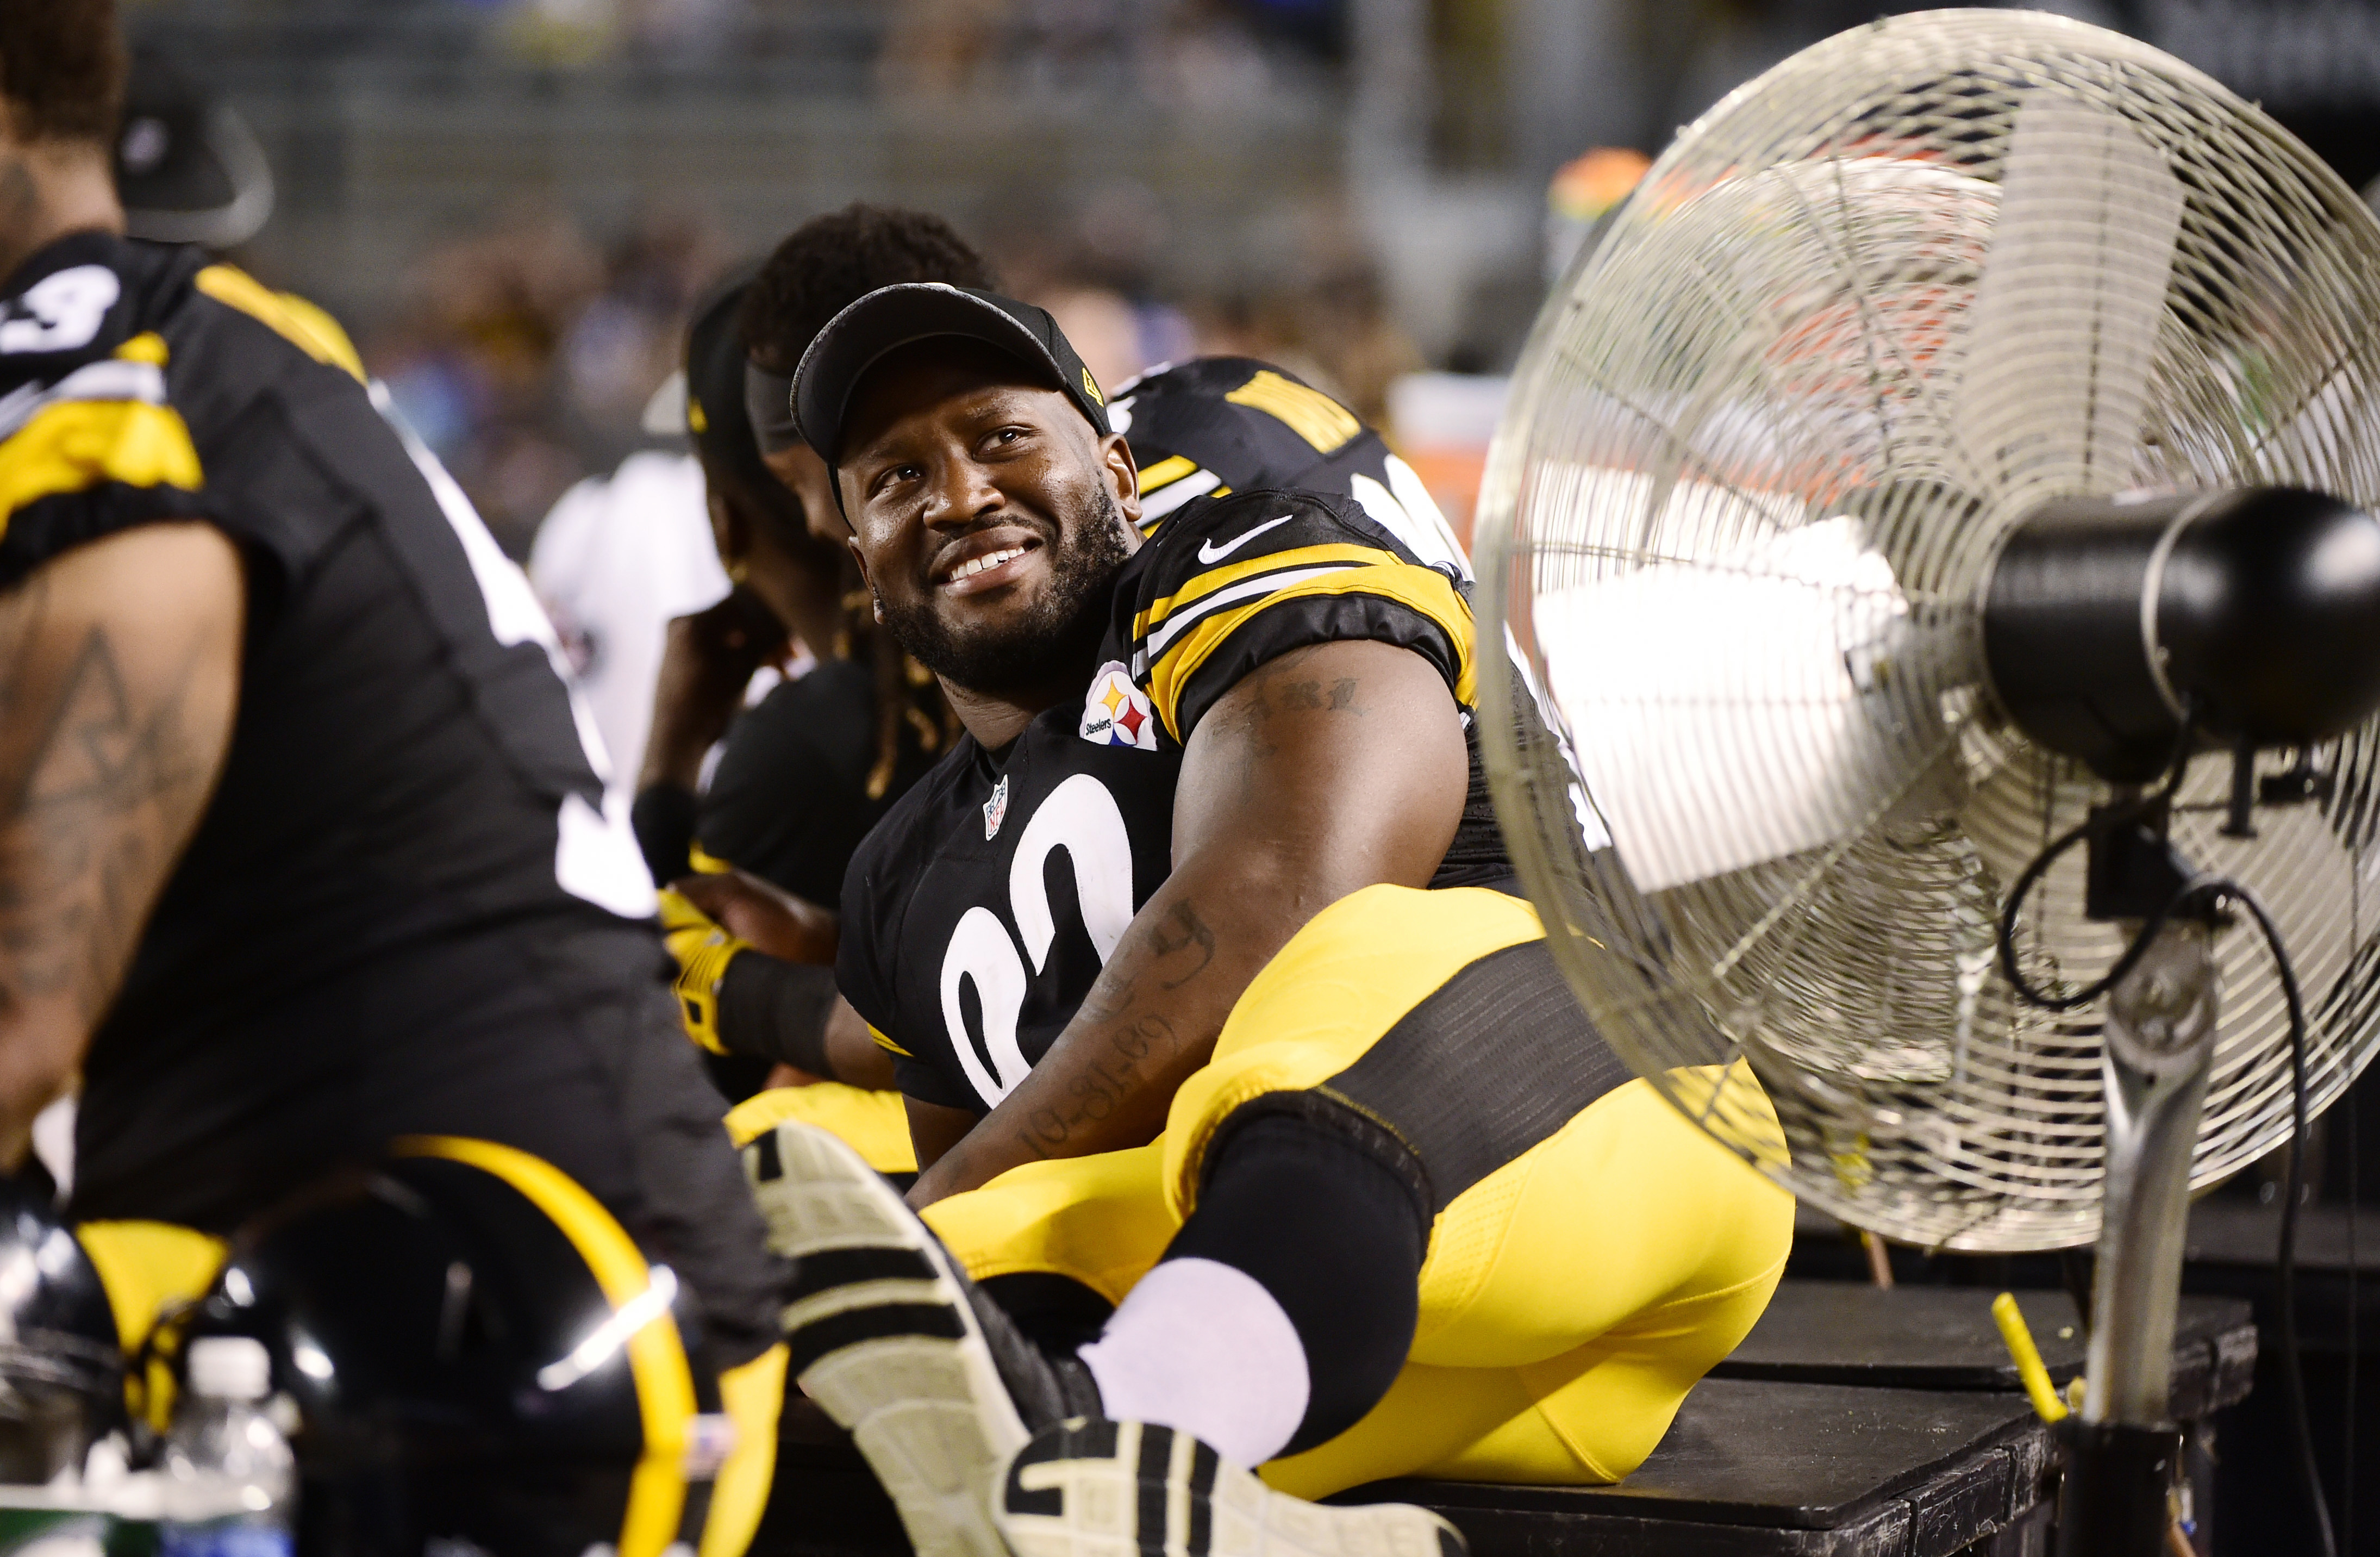 Pittsburgh Steelers outside linebacker James Harrison (92) lies on a bench during the second half of an NFL preseason football game against the Philadelphia Eagles in Pittsburgh, on Thursday, Aug. 18, 2016. (AP Photo/Fred Vuich)